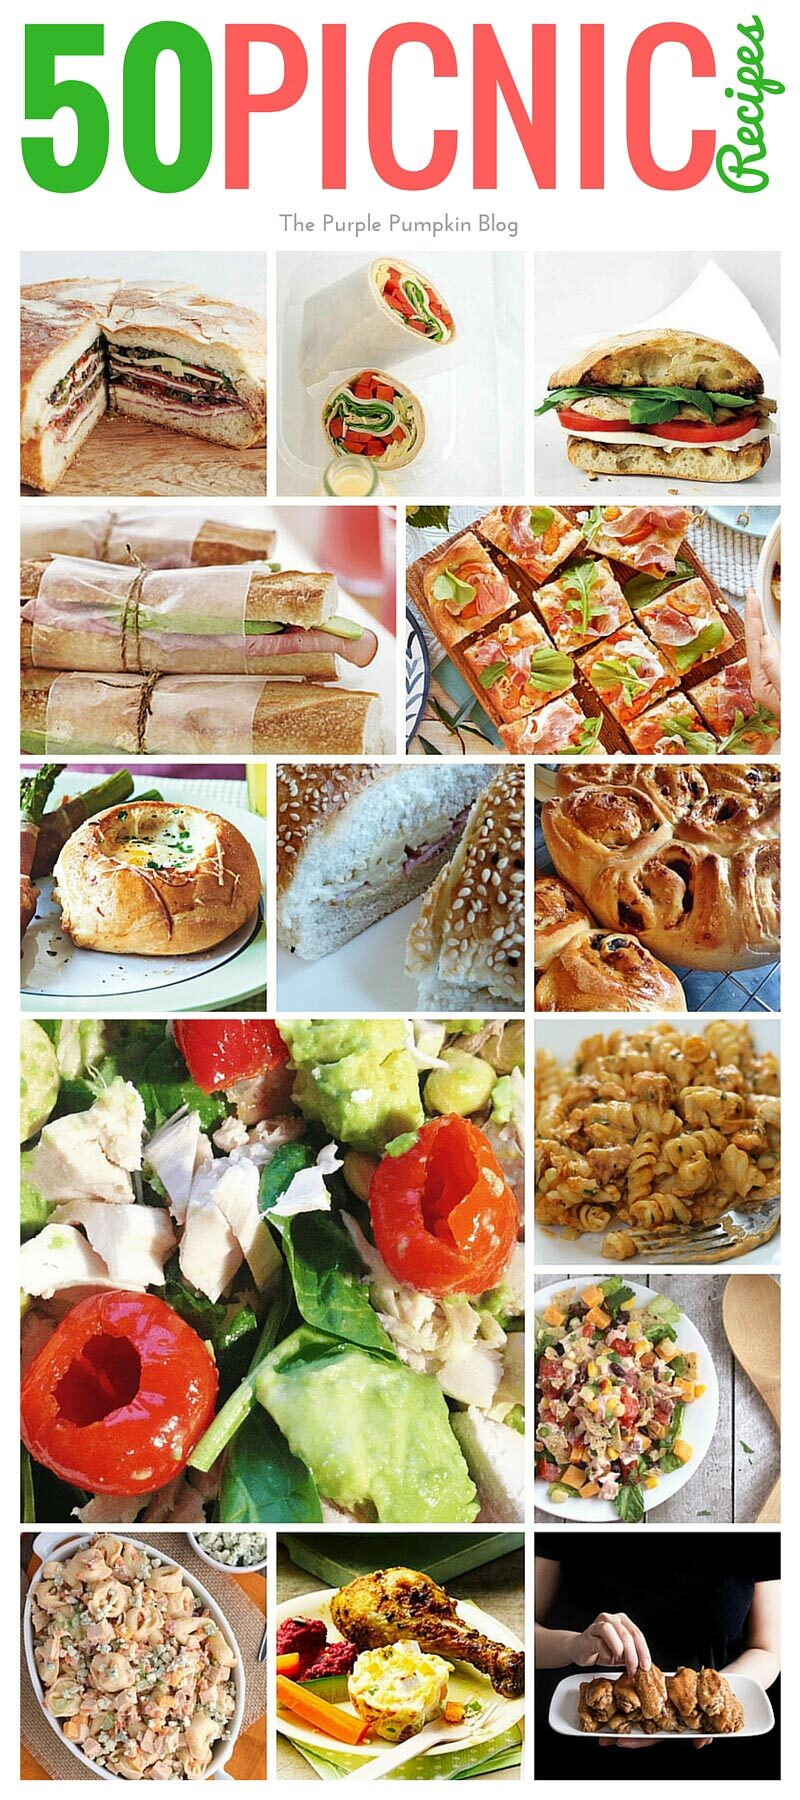 50 Picnic Recipes